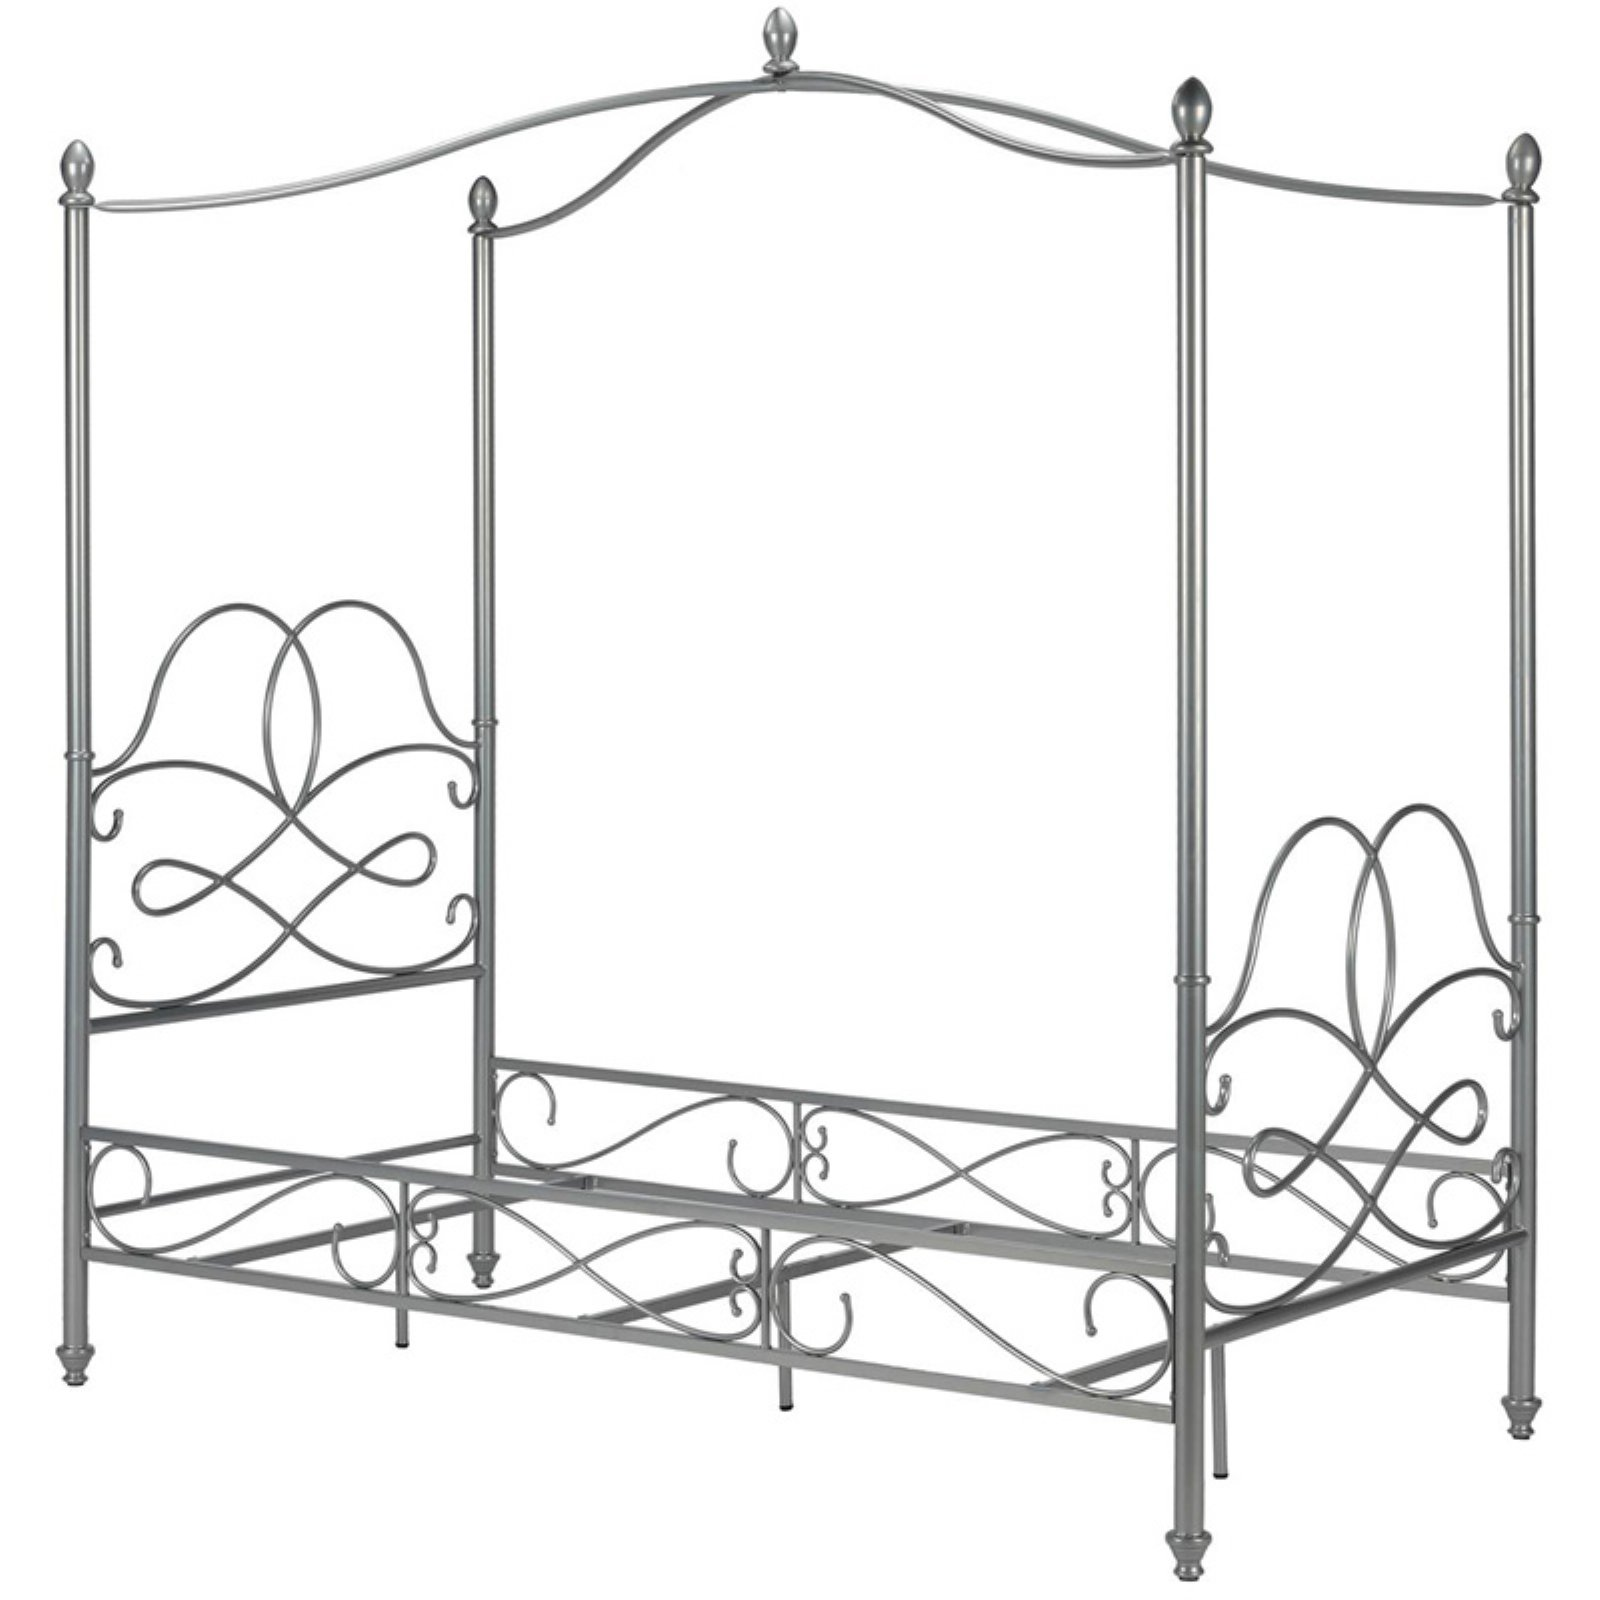 Dorel Home Fancy Metal Canopy Bed, Twin, Multiple Colors Available